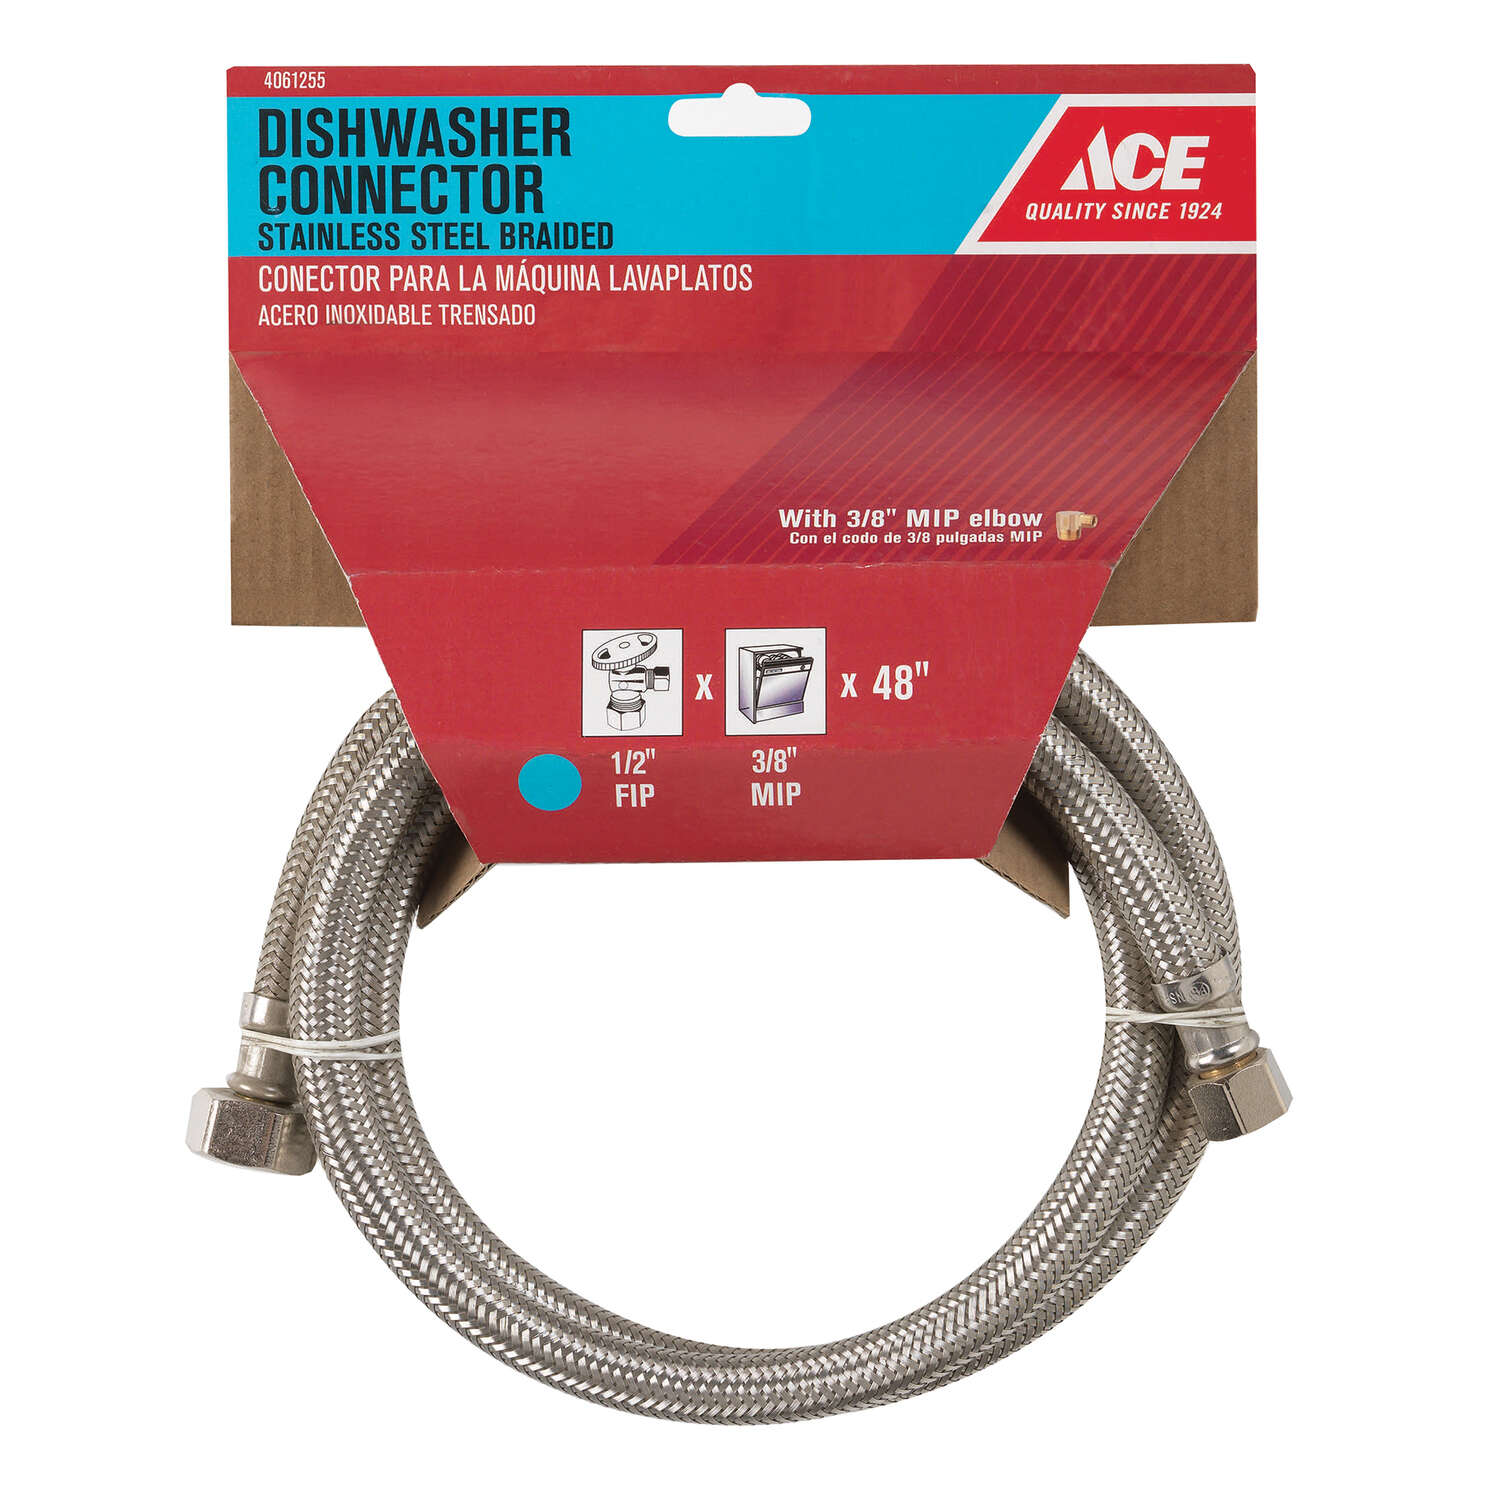 Ace  1/2 in. FIP   x 3/8 in. Dia. x 48 in. L Compression  Braided Stainless Steel  Dishwasher  Dishw